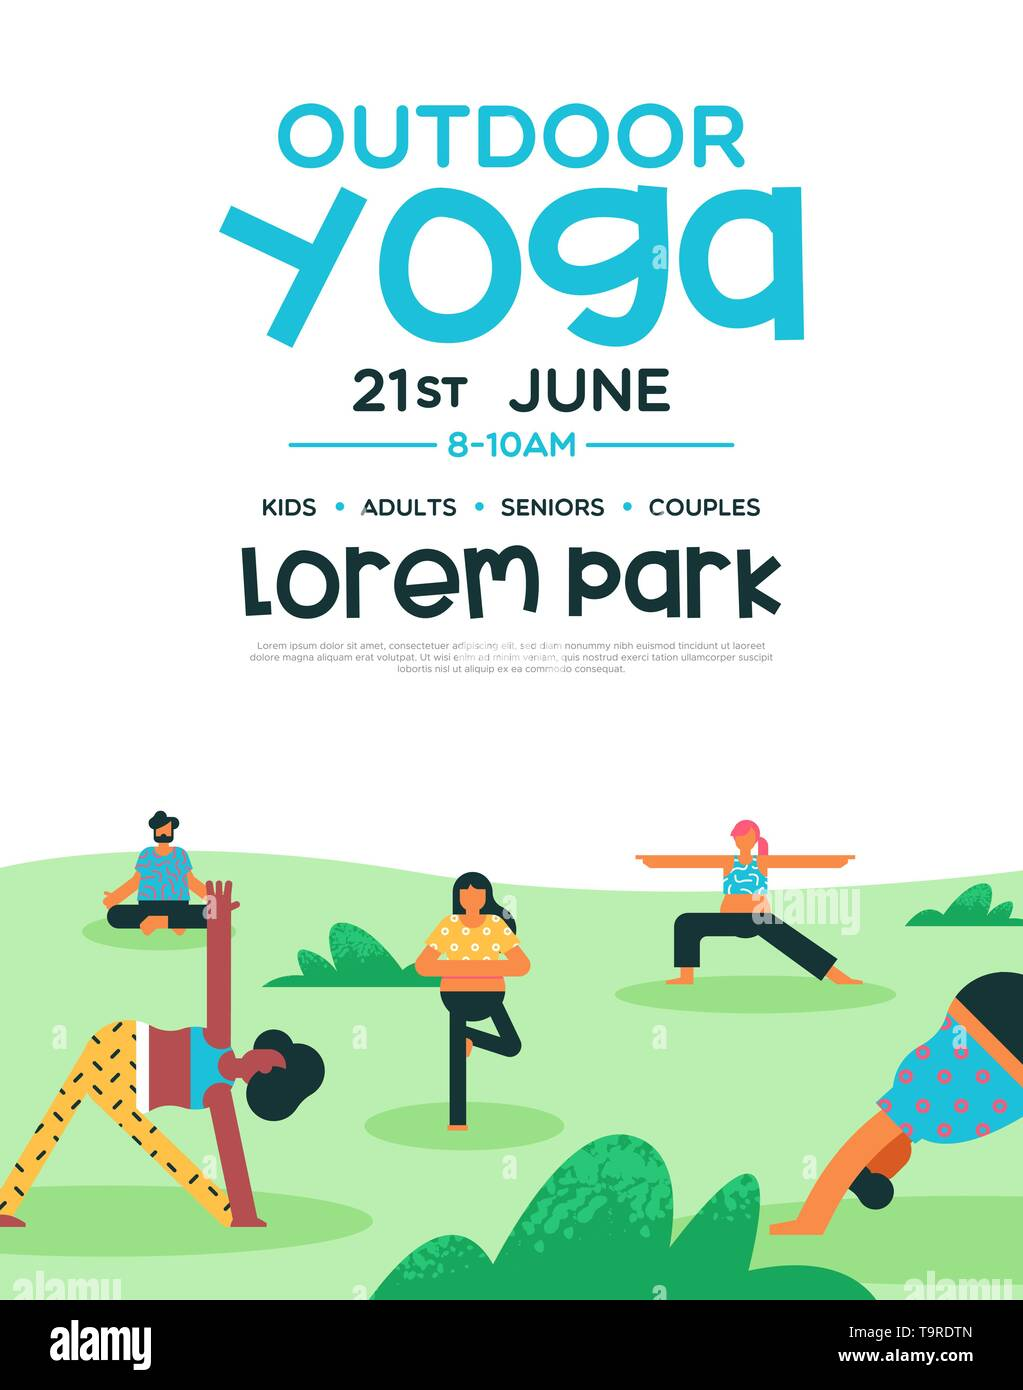 Outdoor Yoga Flyer Template For Health And Fitness Class Or Special Event People Group Doing Meditation Poses At Park Stock Vector Image Art Alamy